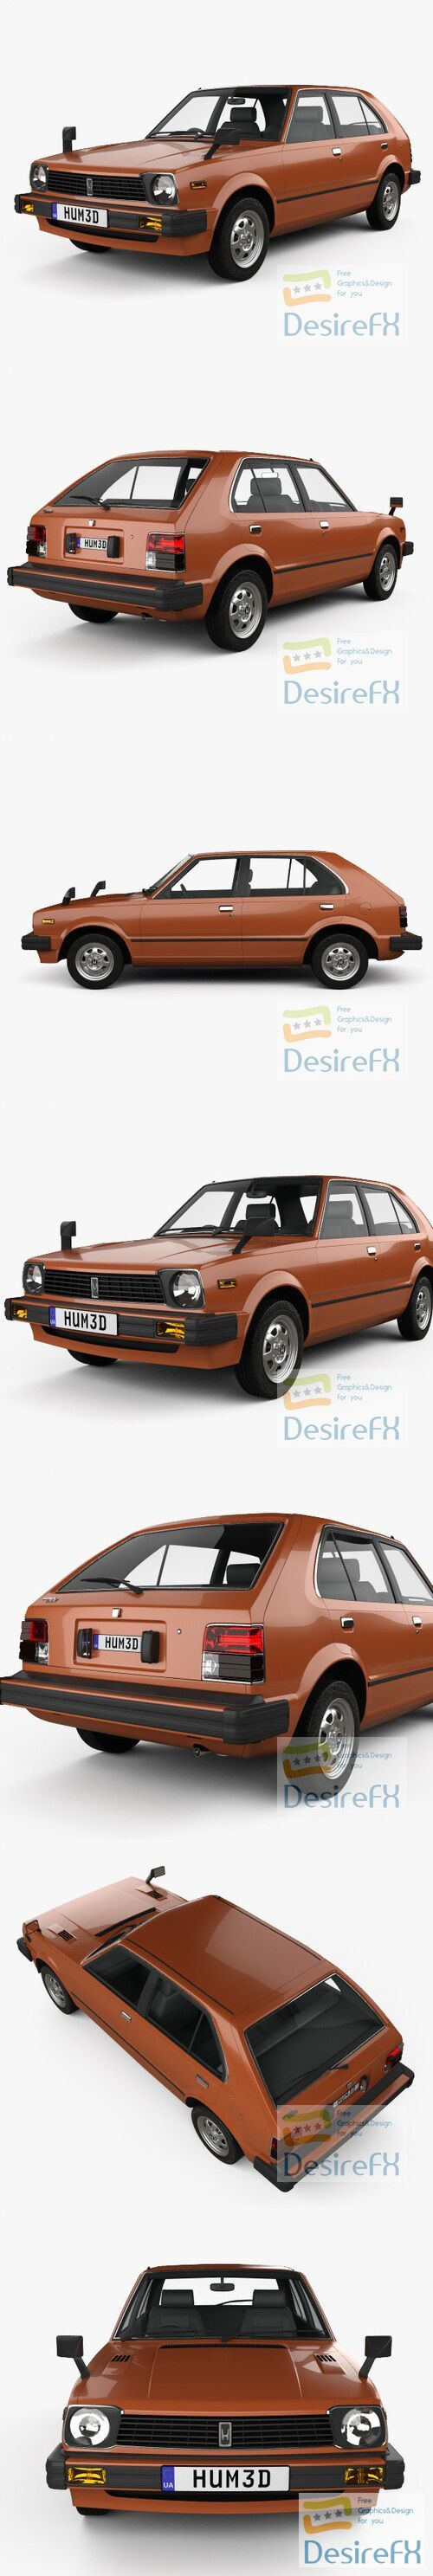 Honda Civic 1979 3D Model